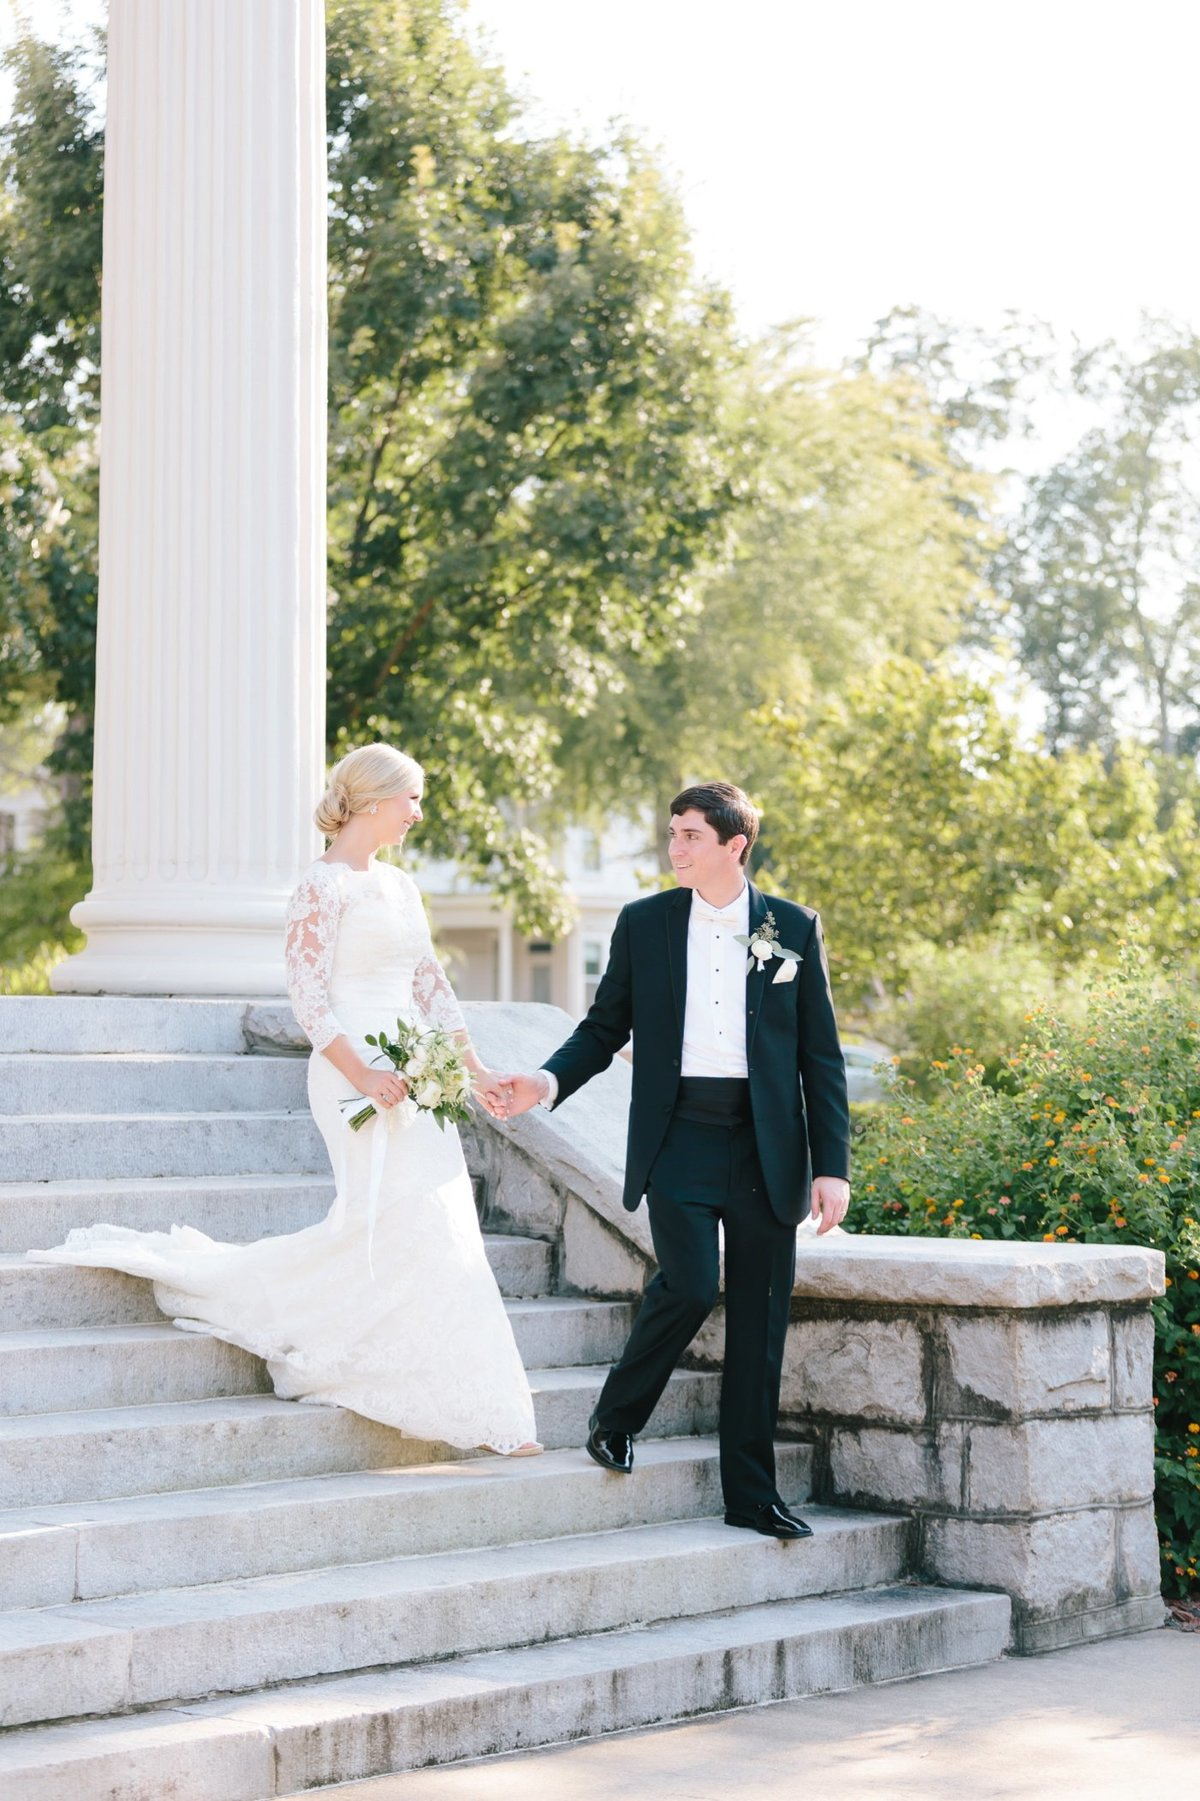 Georgia South Carolina Destination Wedding Photographer_0156